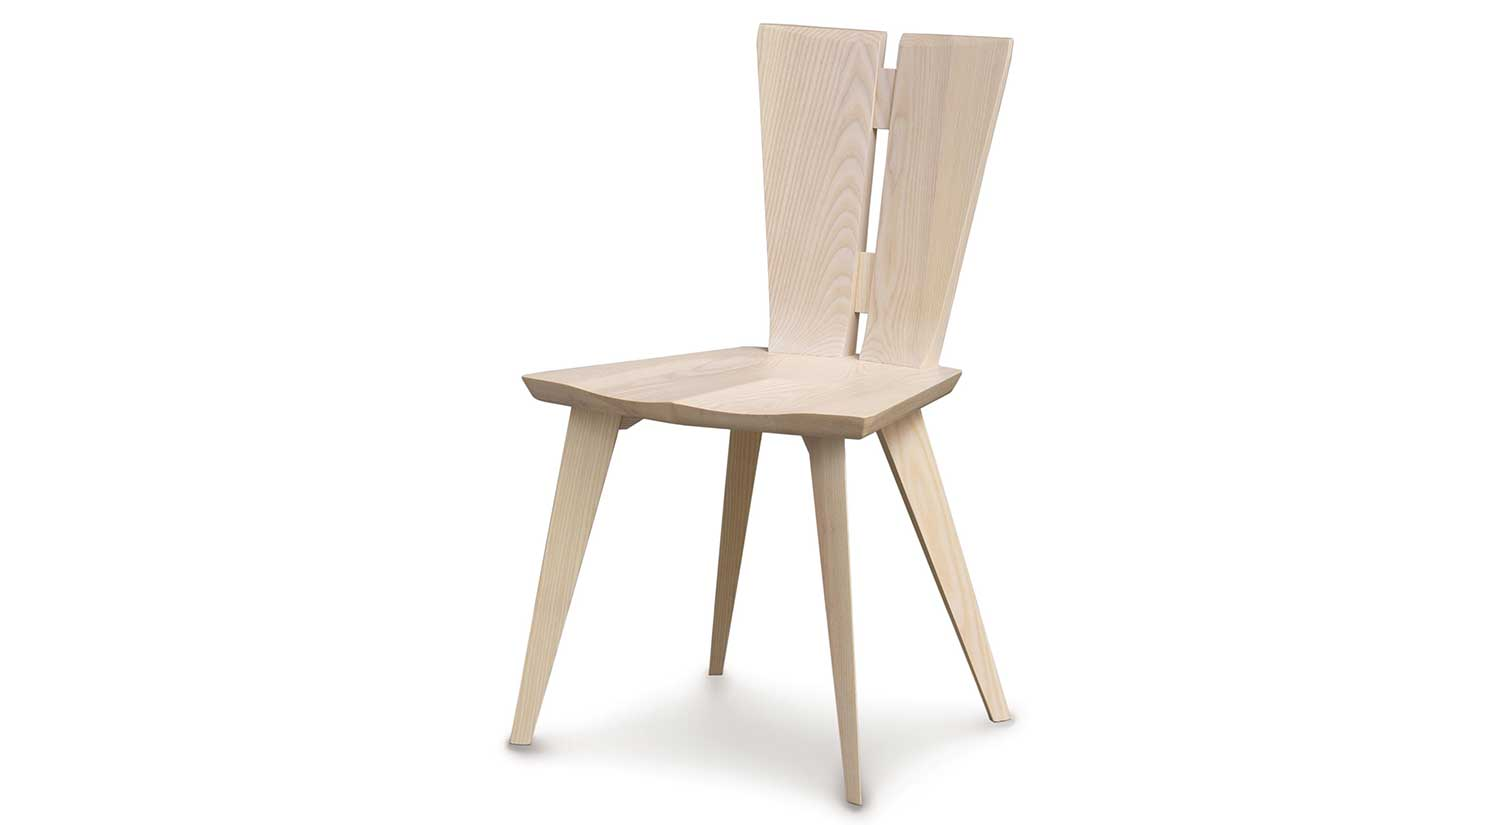 Astounding Circle Furniture Axis Dining Chair Modern Dining Evergreenethics Interior Chair Design Evergreenethicsorg